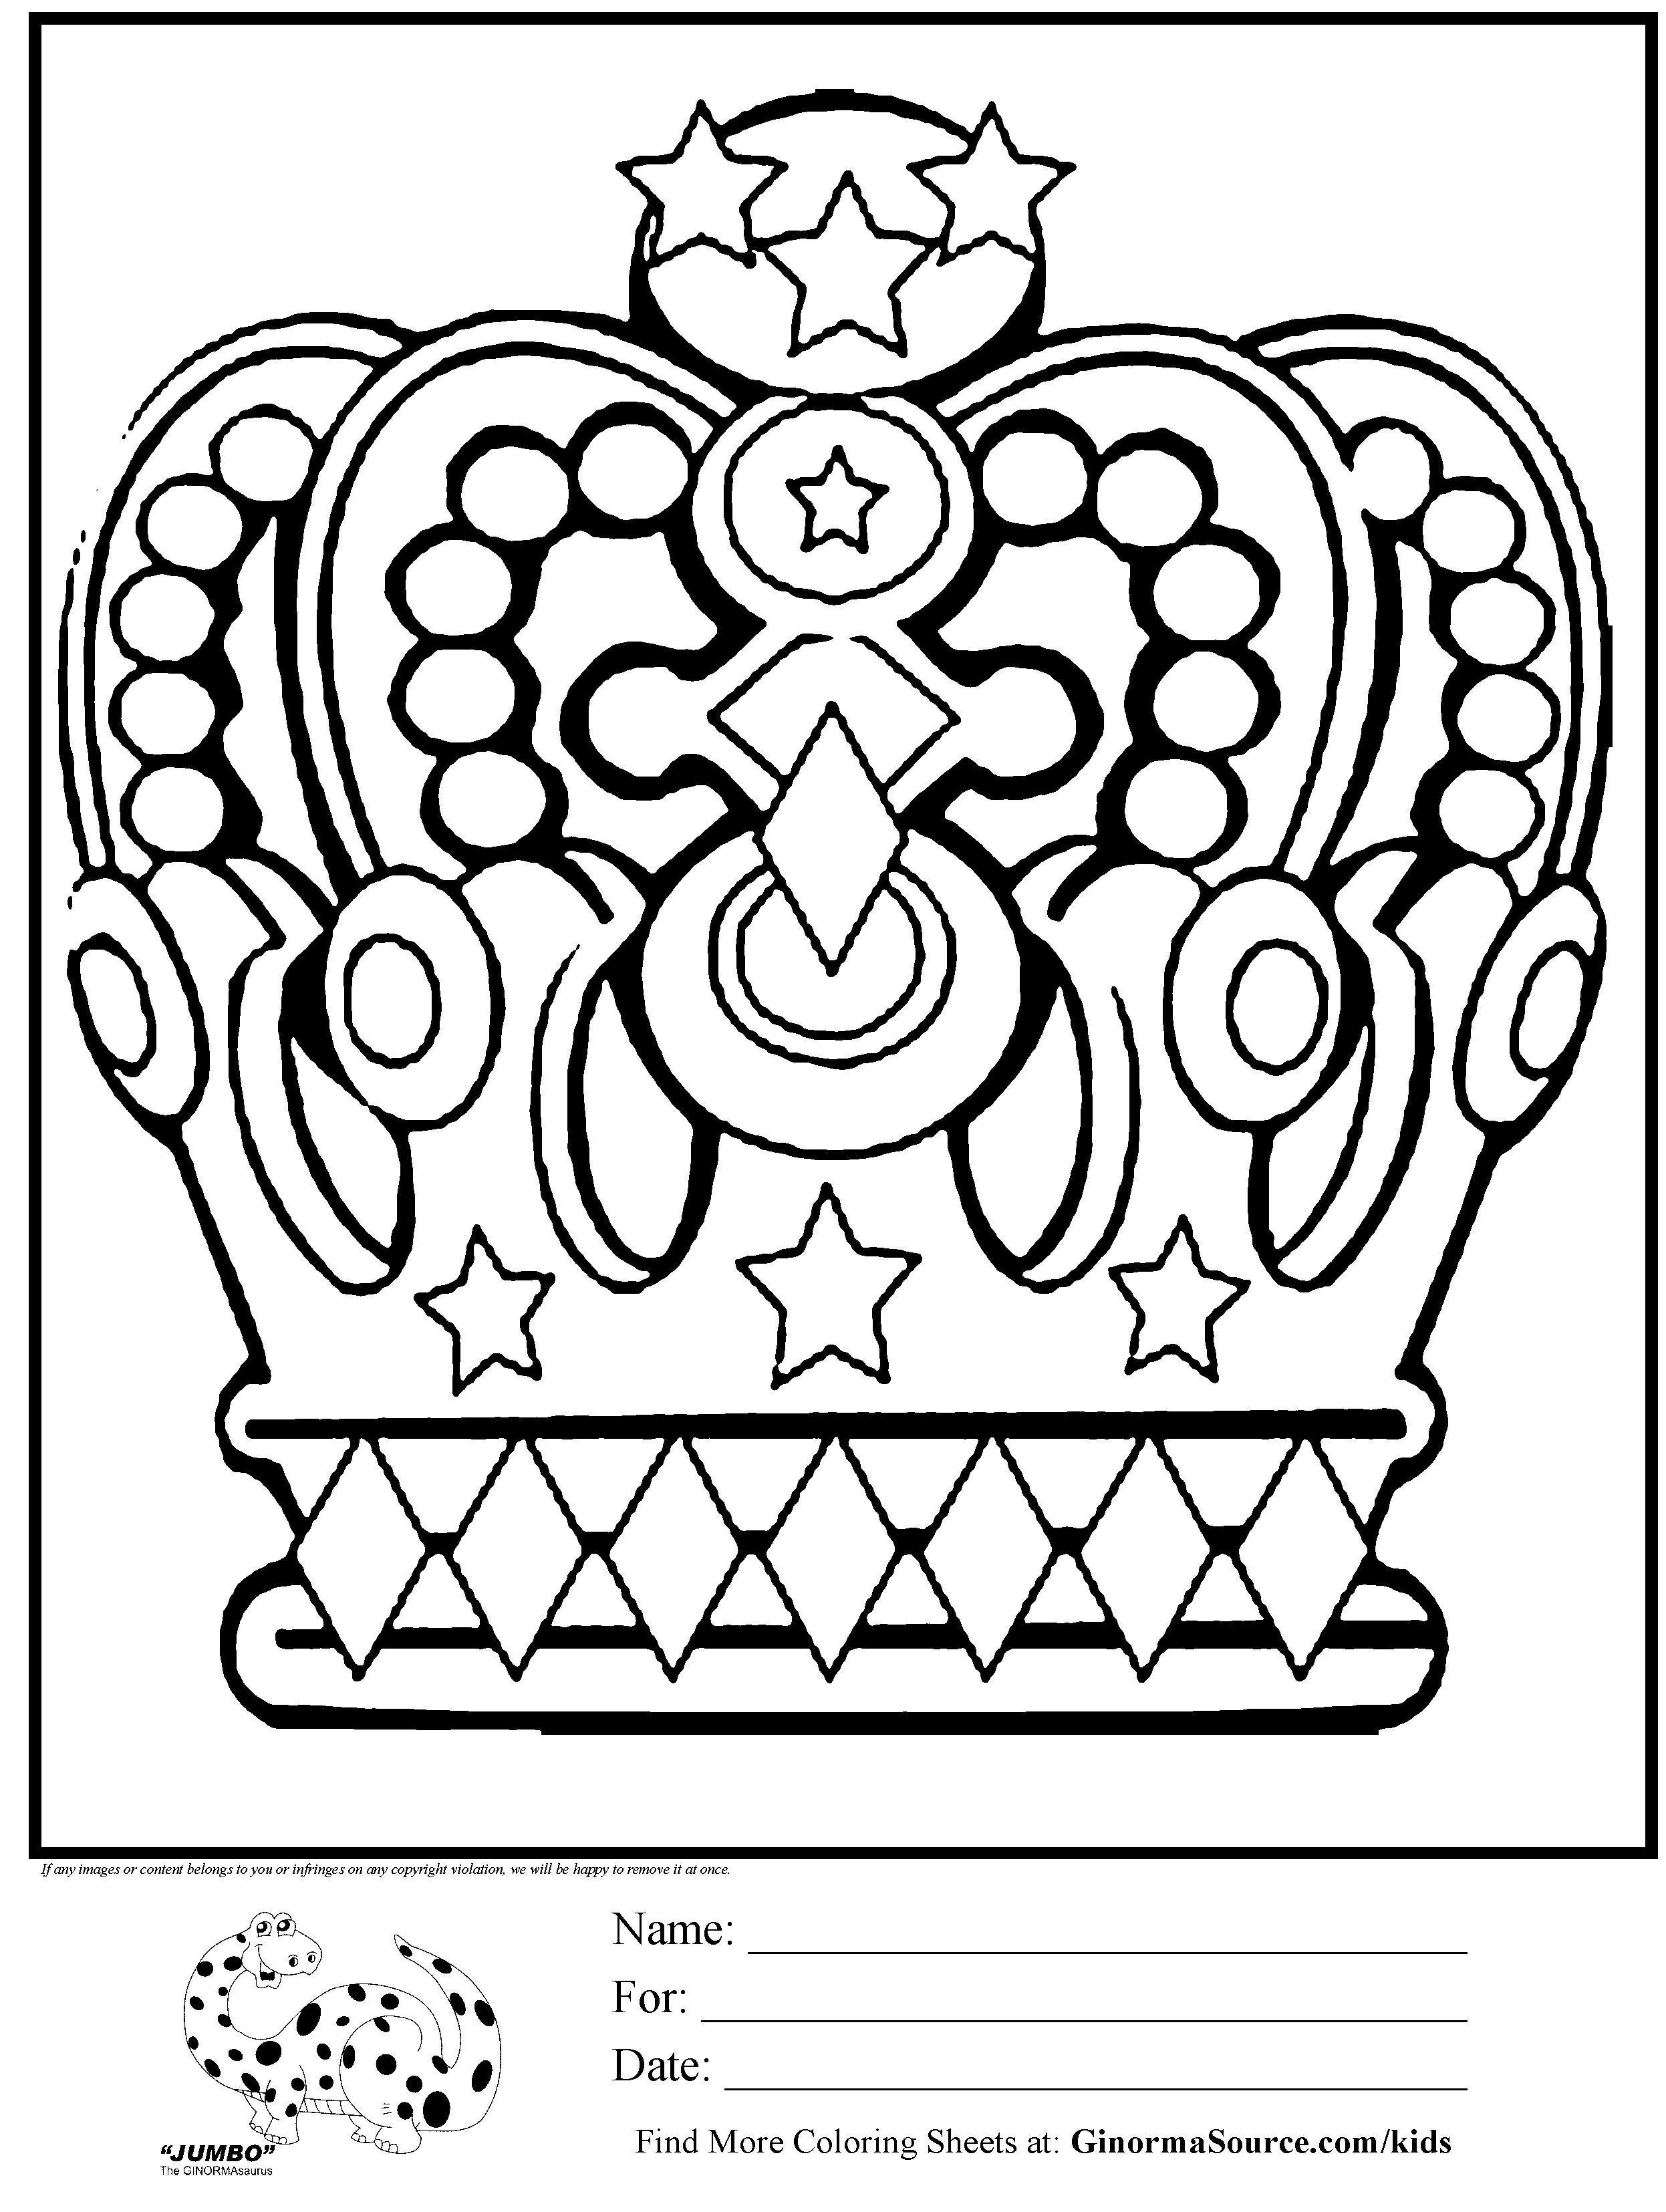 King Boo Coloring Pages At Getcolorings